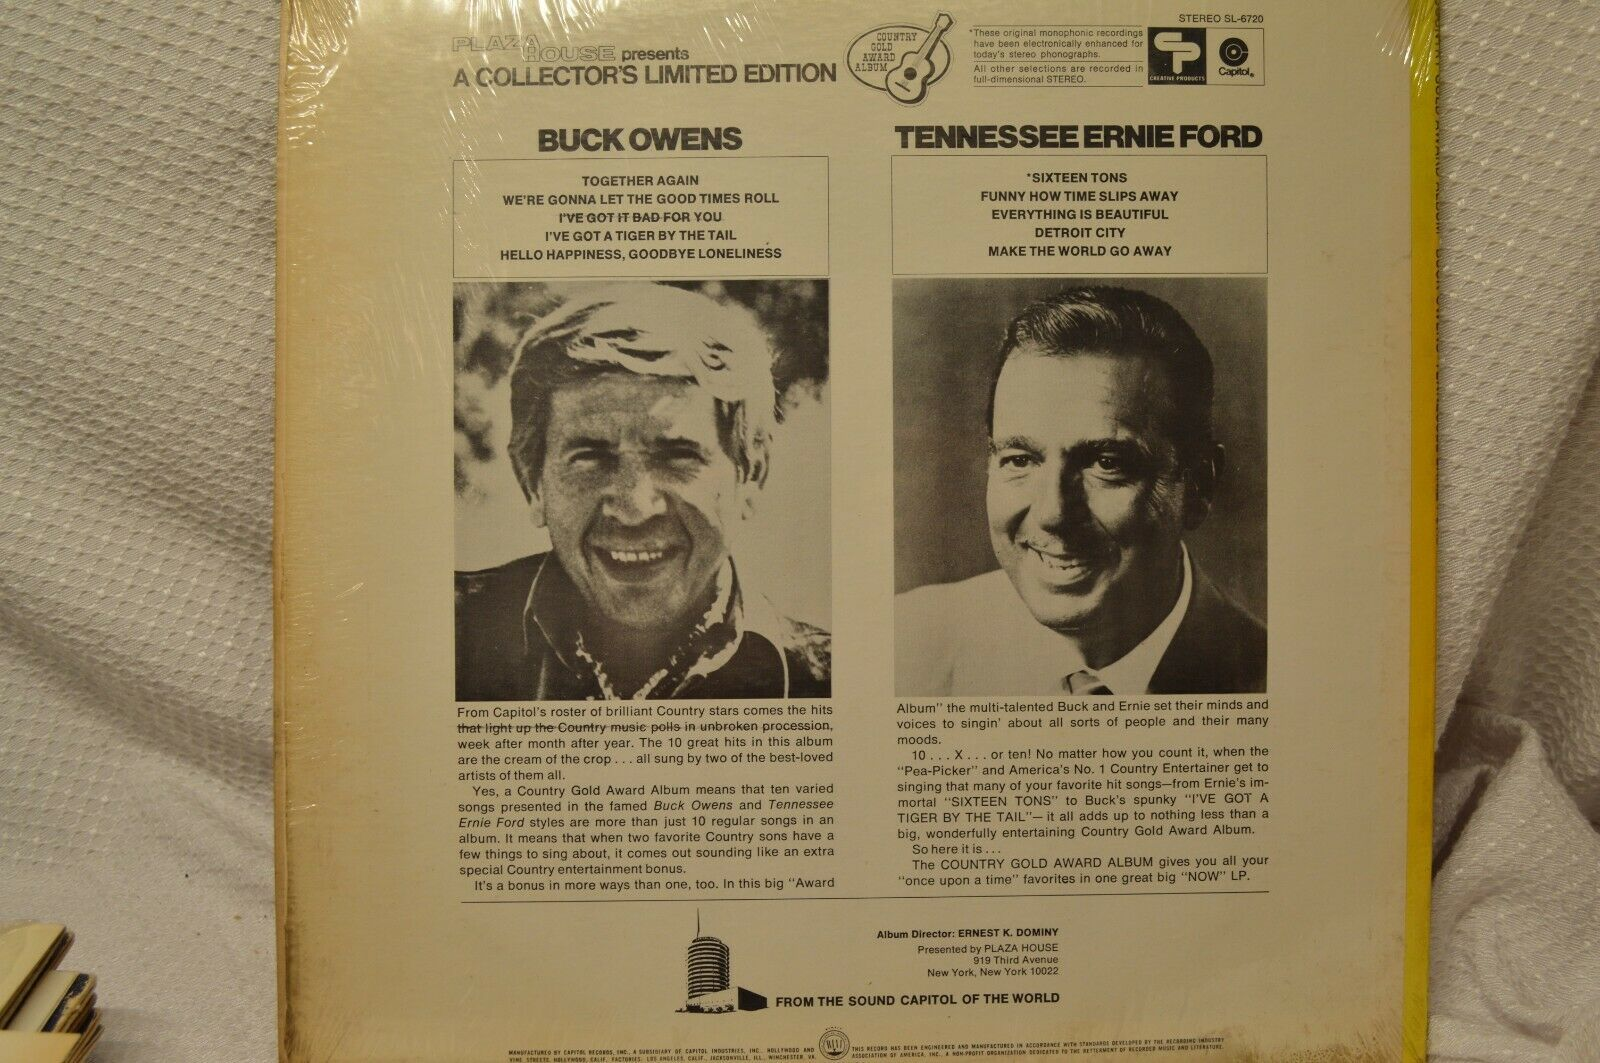 1971 LP 33 RECORD BUCK OWENS AND TENNESSEE ERNIE FORD  Music Hall Country Gold